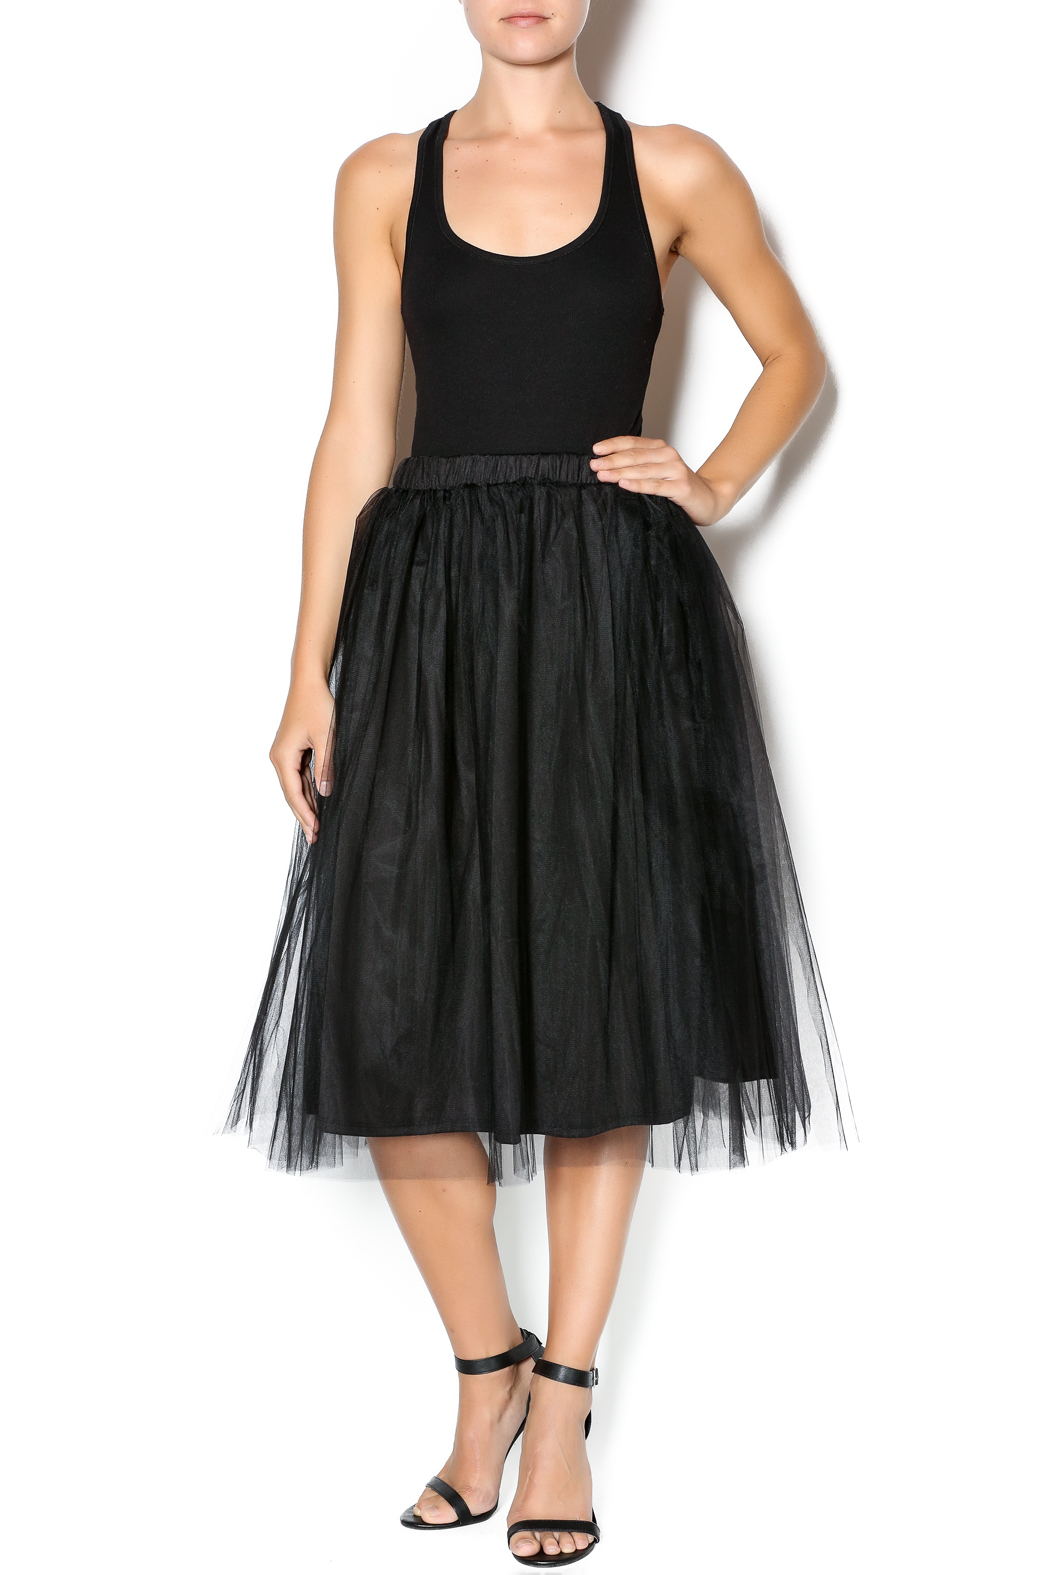 tea n tulle midi skirt from new jersey by